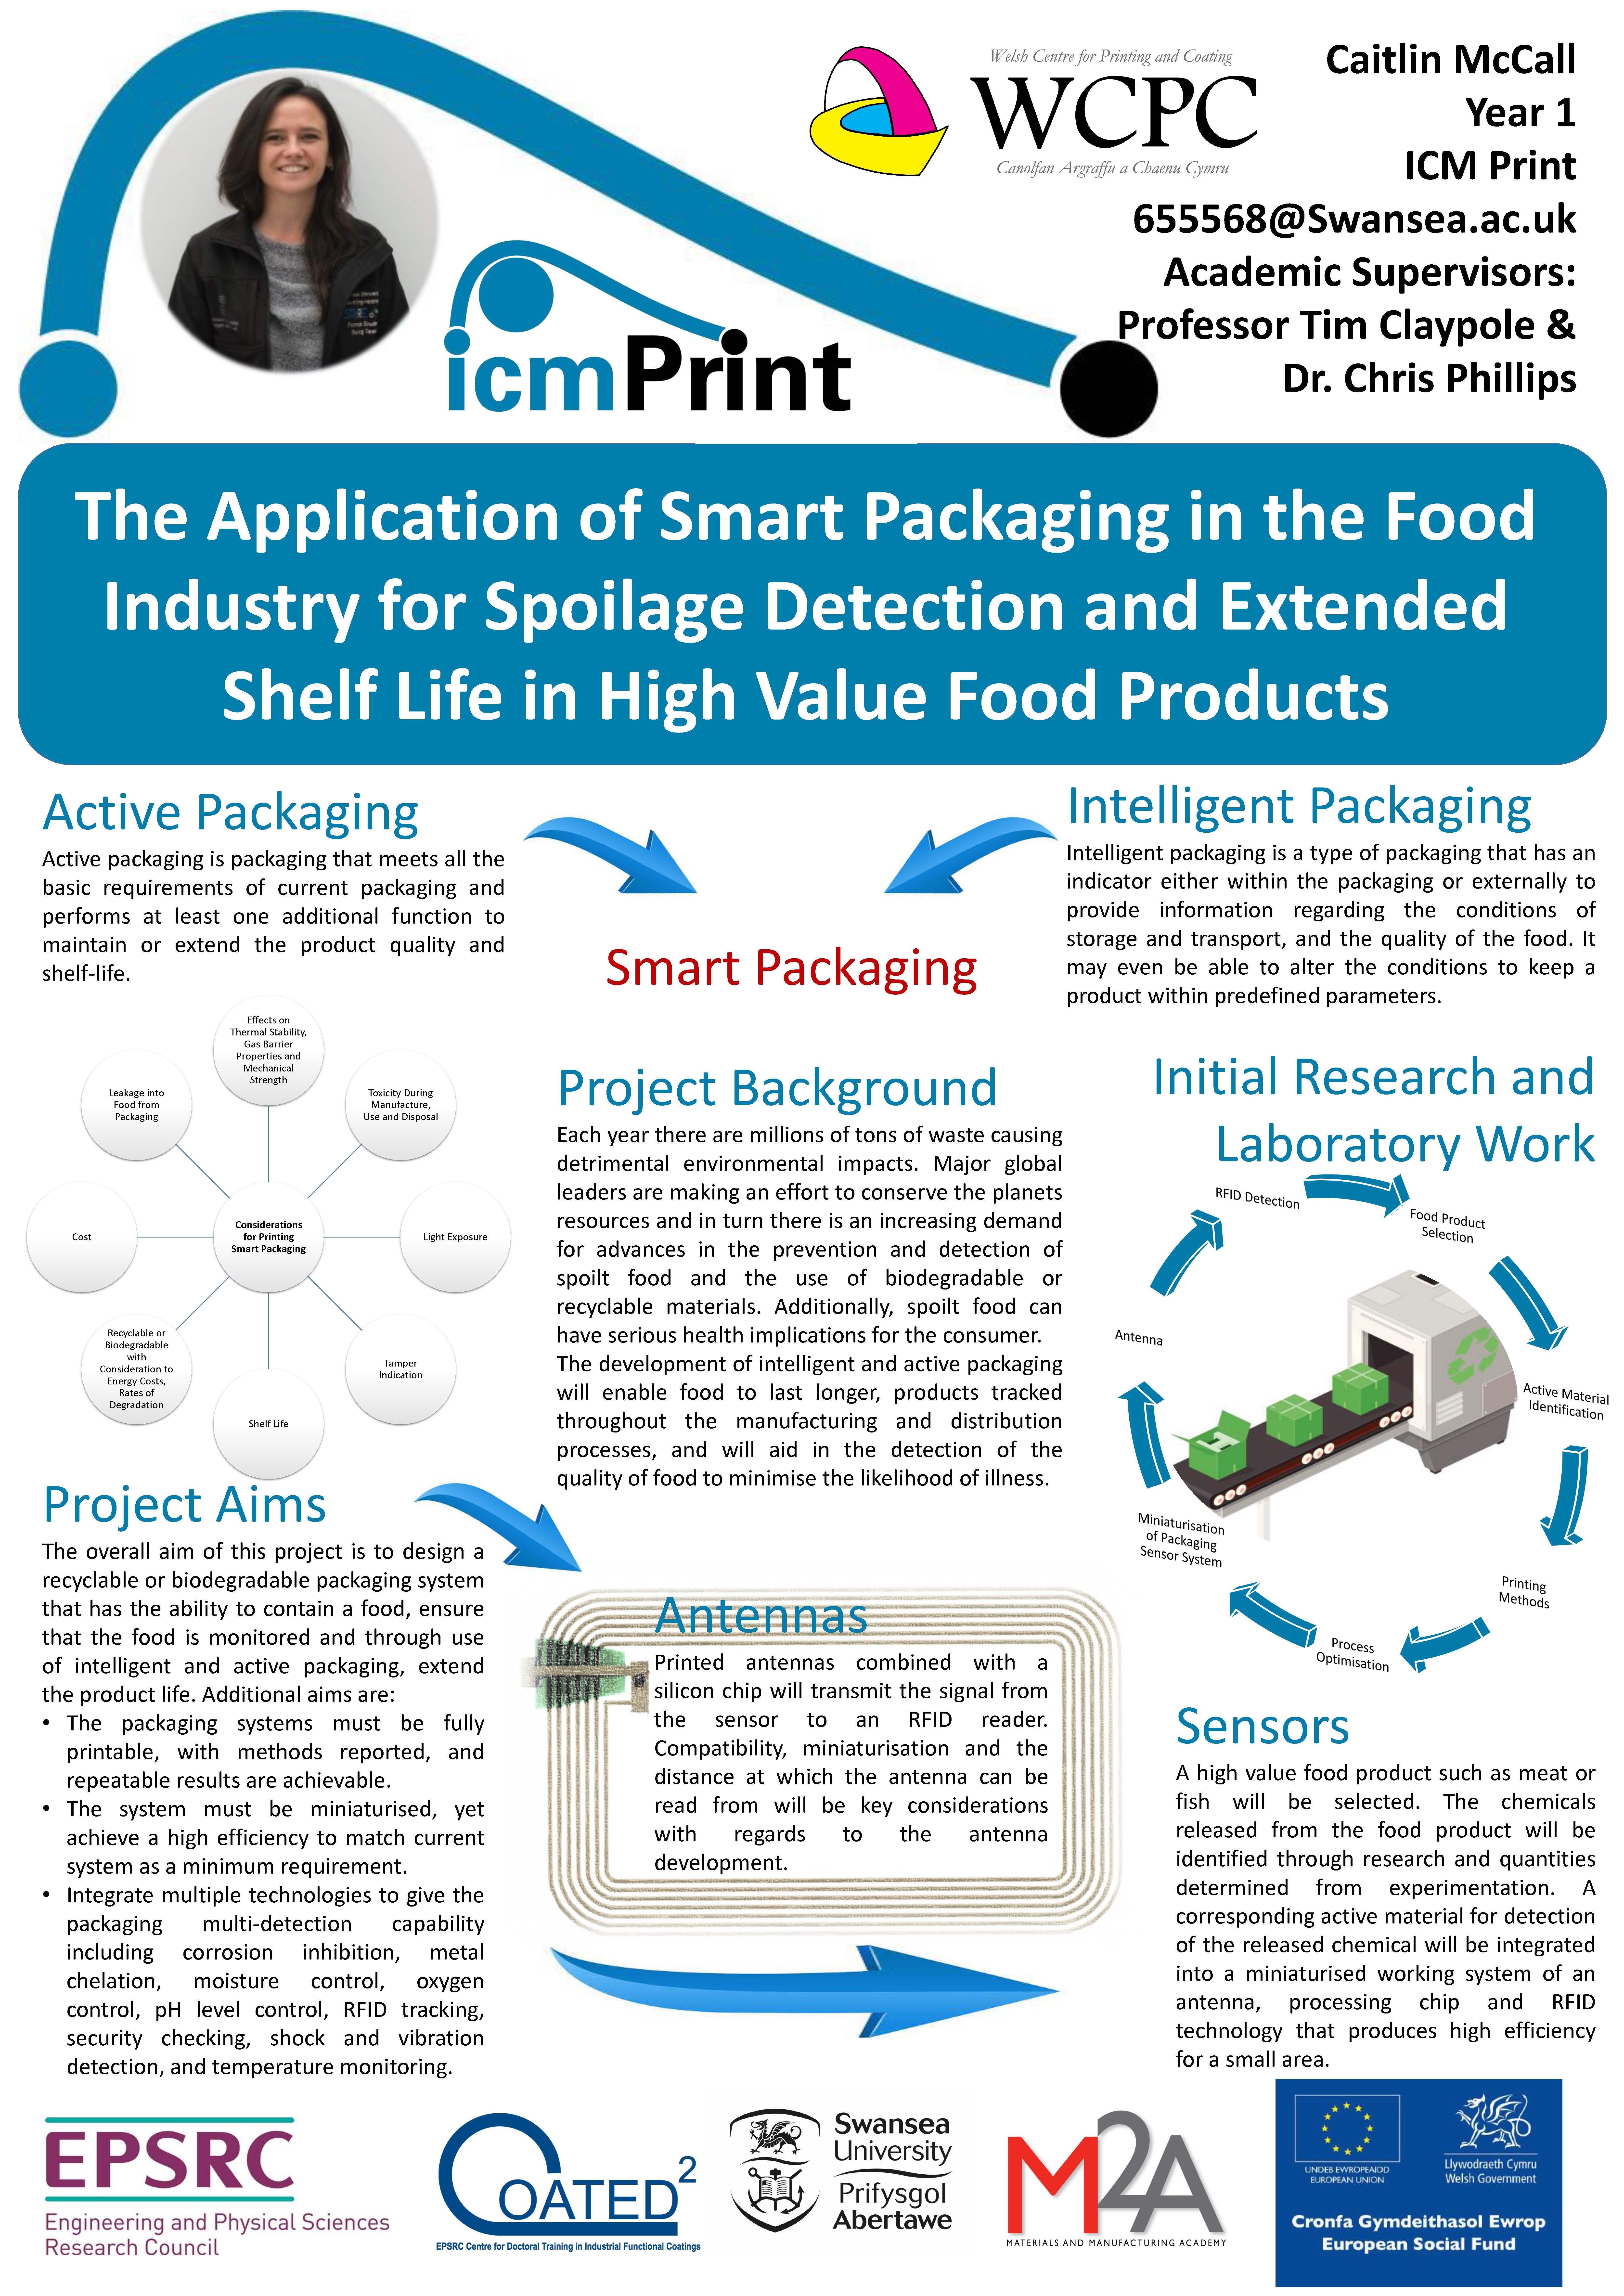 The Application of Smart Packaging in the Food Industry for Spoilage Detection and Extended Shelf Life in High Value Food Products